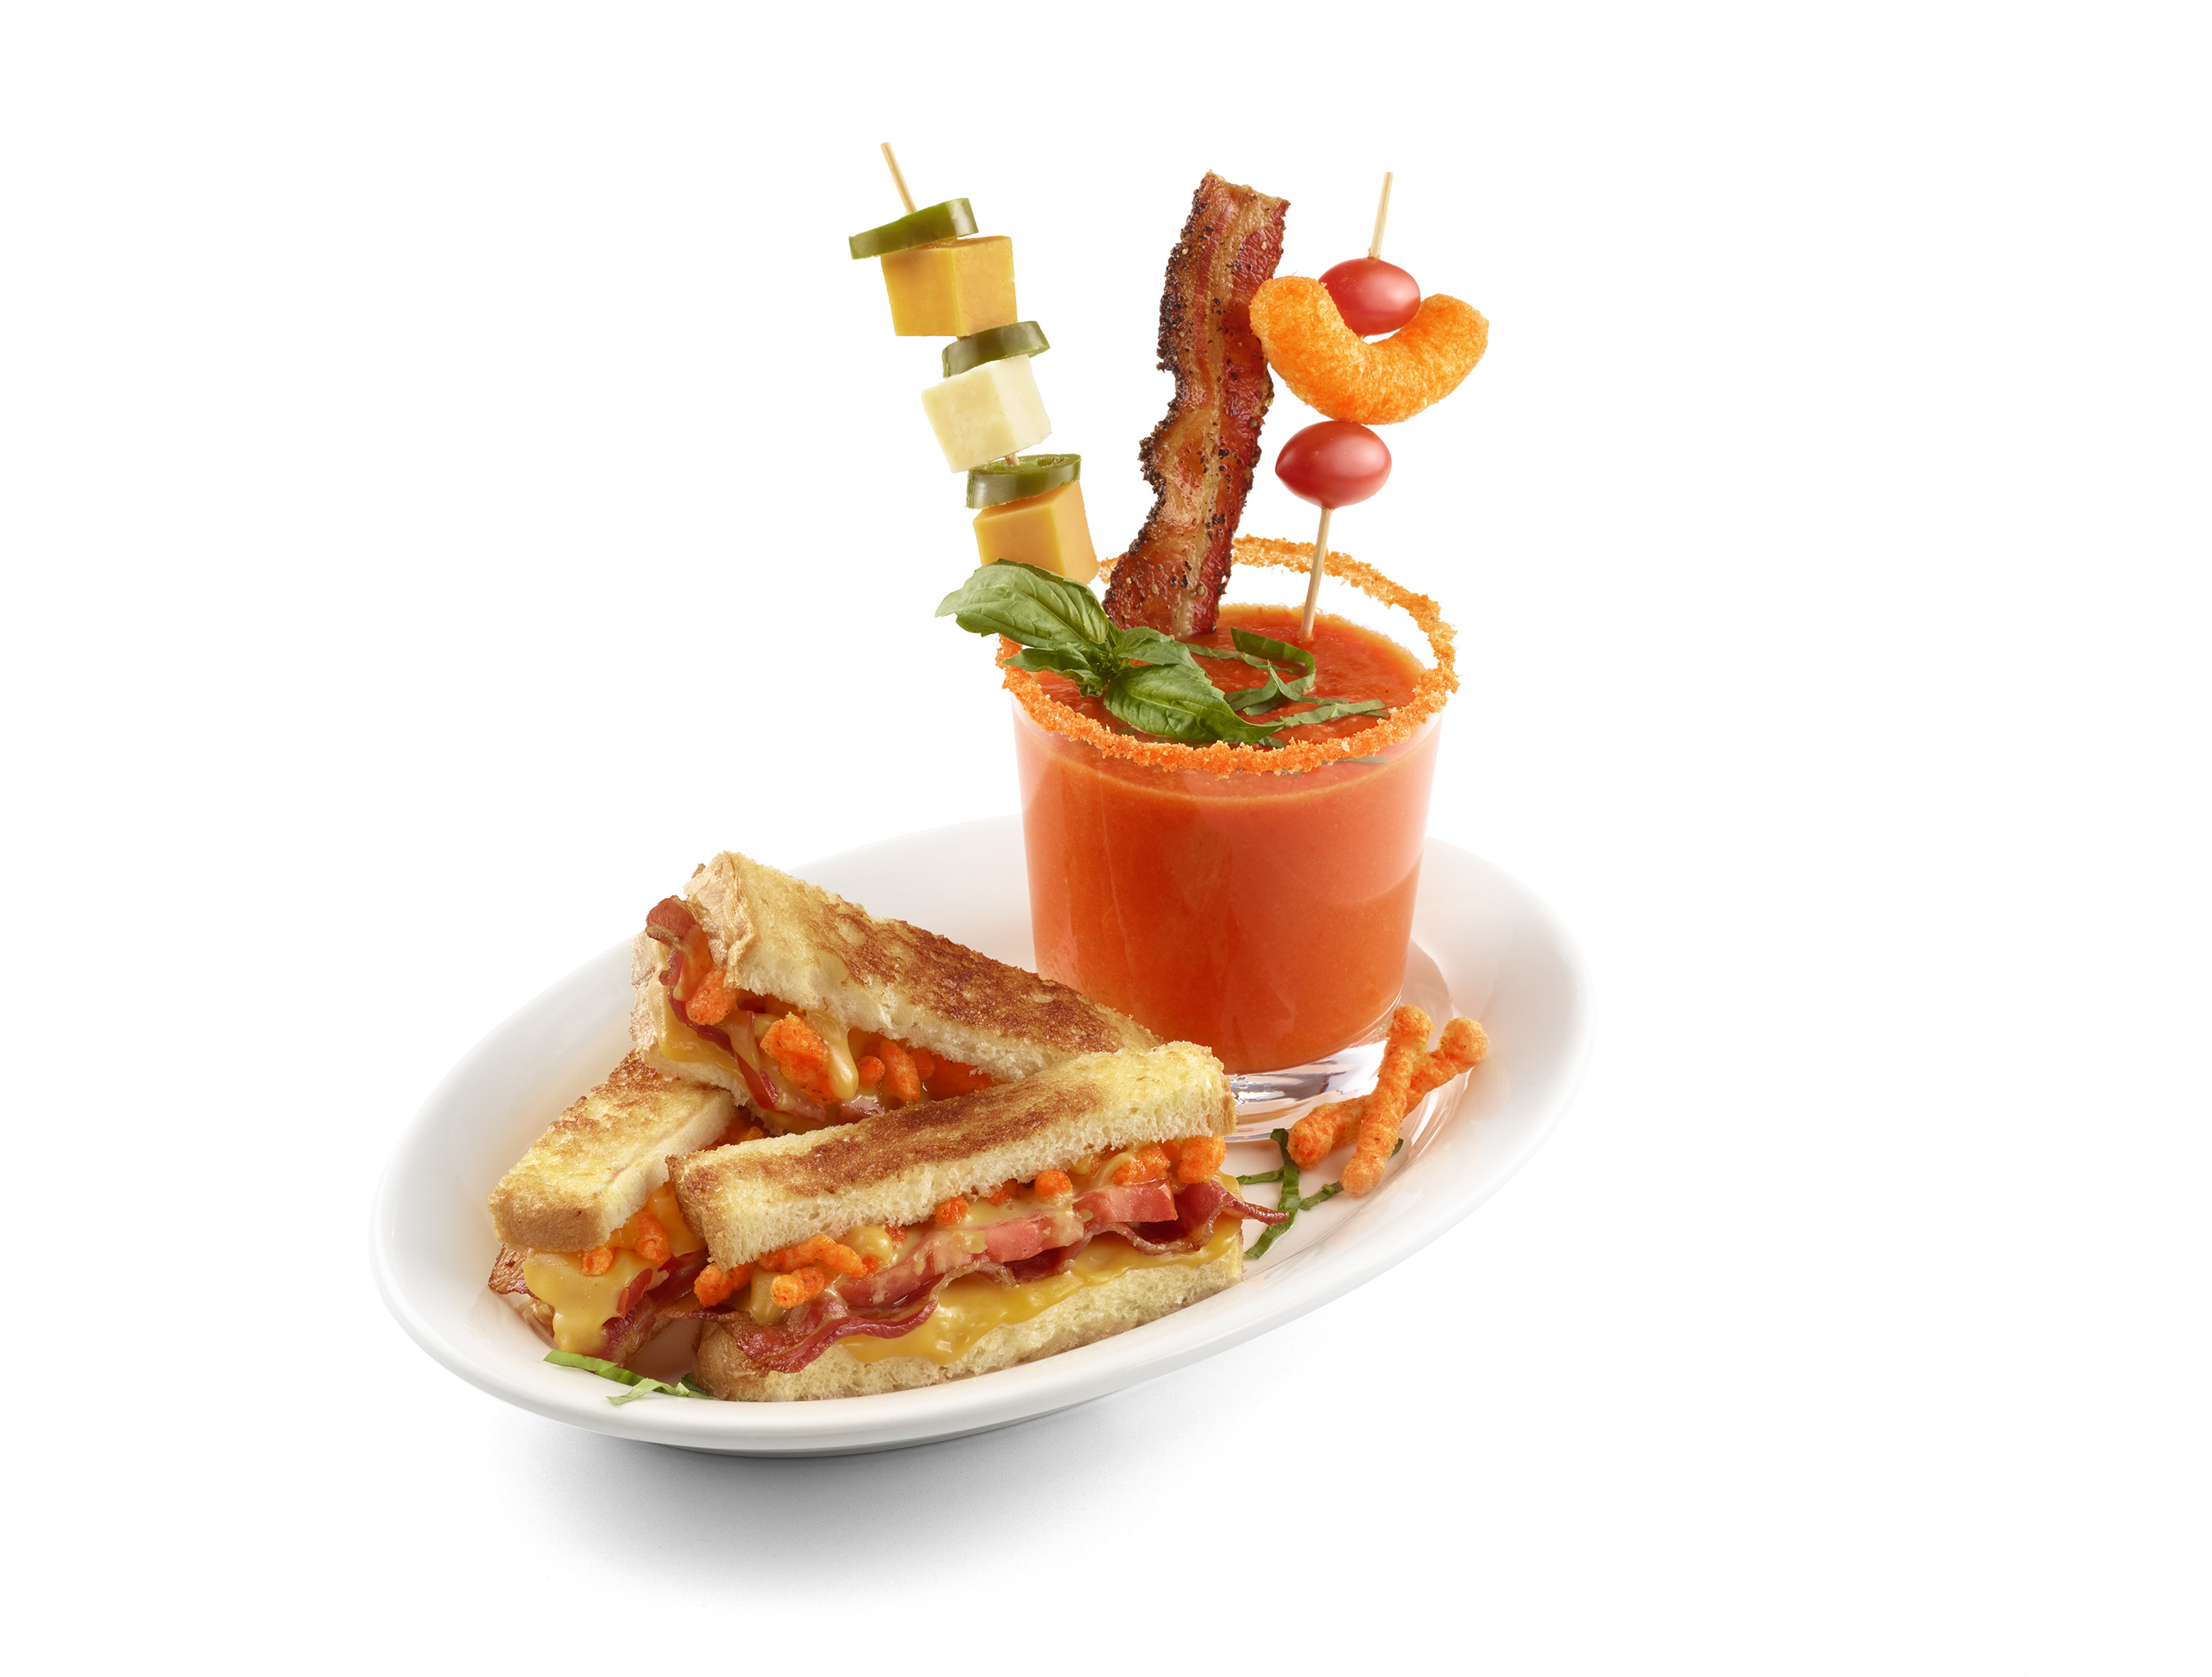 One of three appetizer options, The Spotted Cheetah's Cheetos® Grilled Cheese & Tomato Soup is a delicious spin on a familiar comfort food to warm every Cheetos lover's soul.